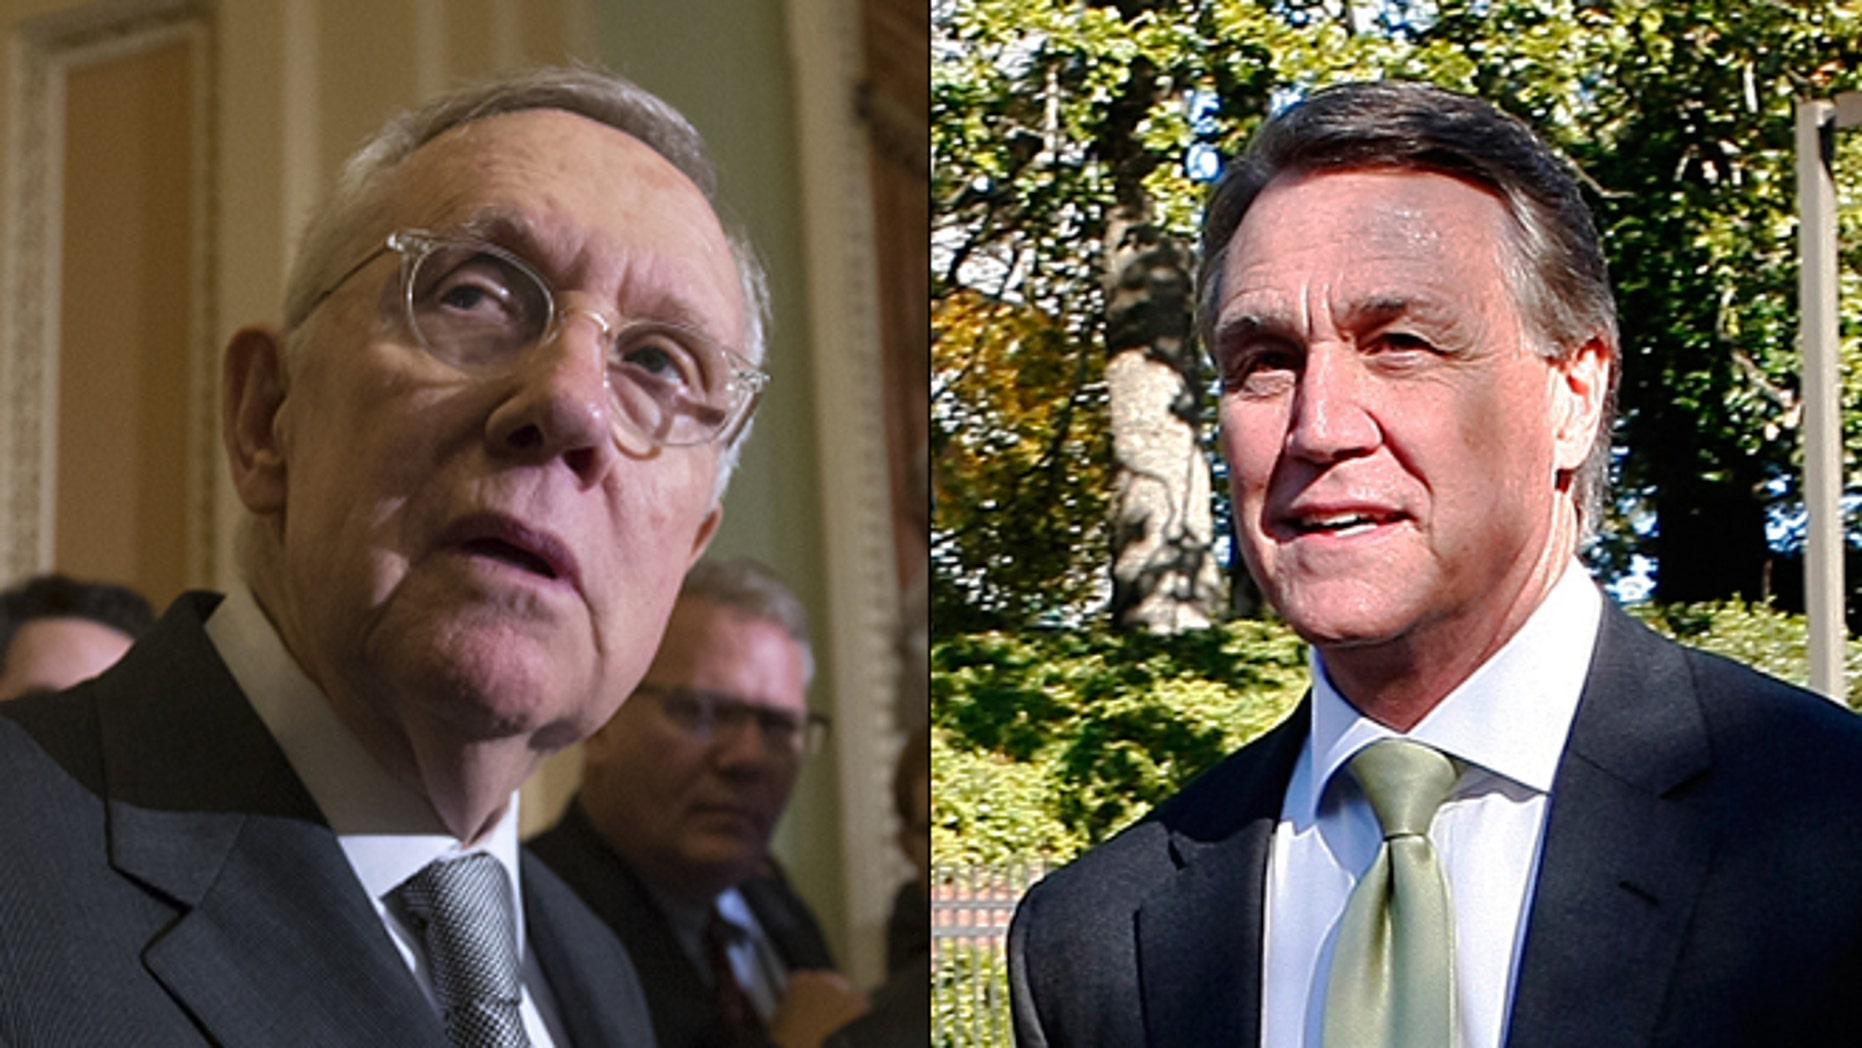 At left, Senate Minority Leader Harry Reid; at right, Sen. David Perdue. (AP/Reuters)